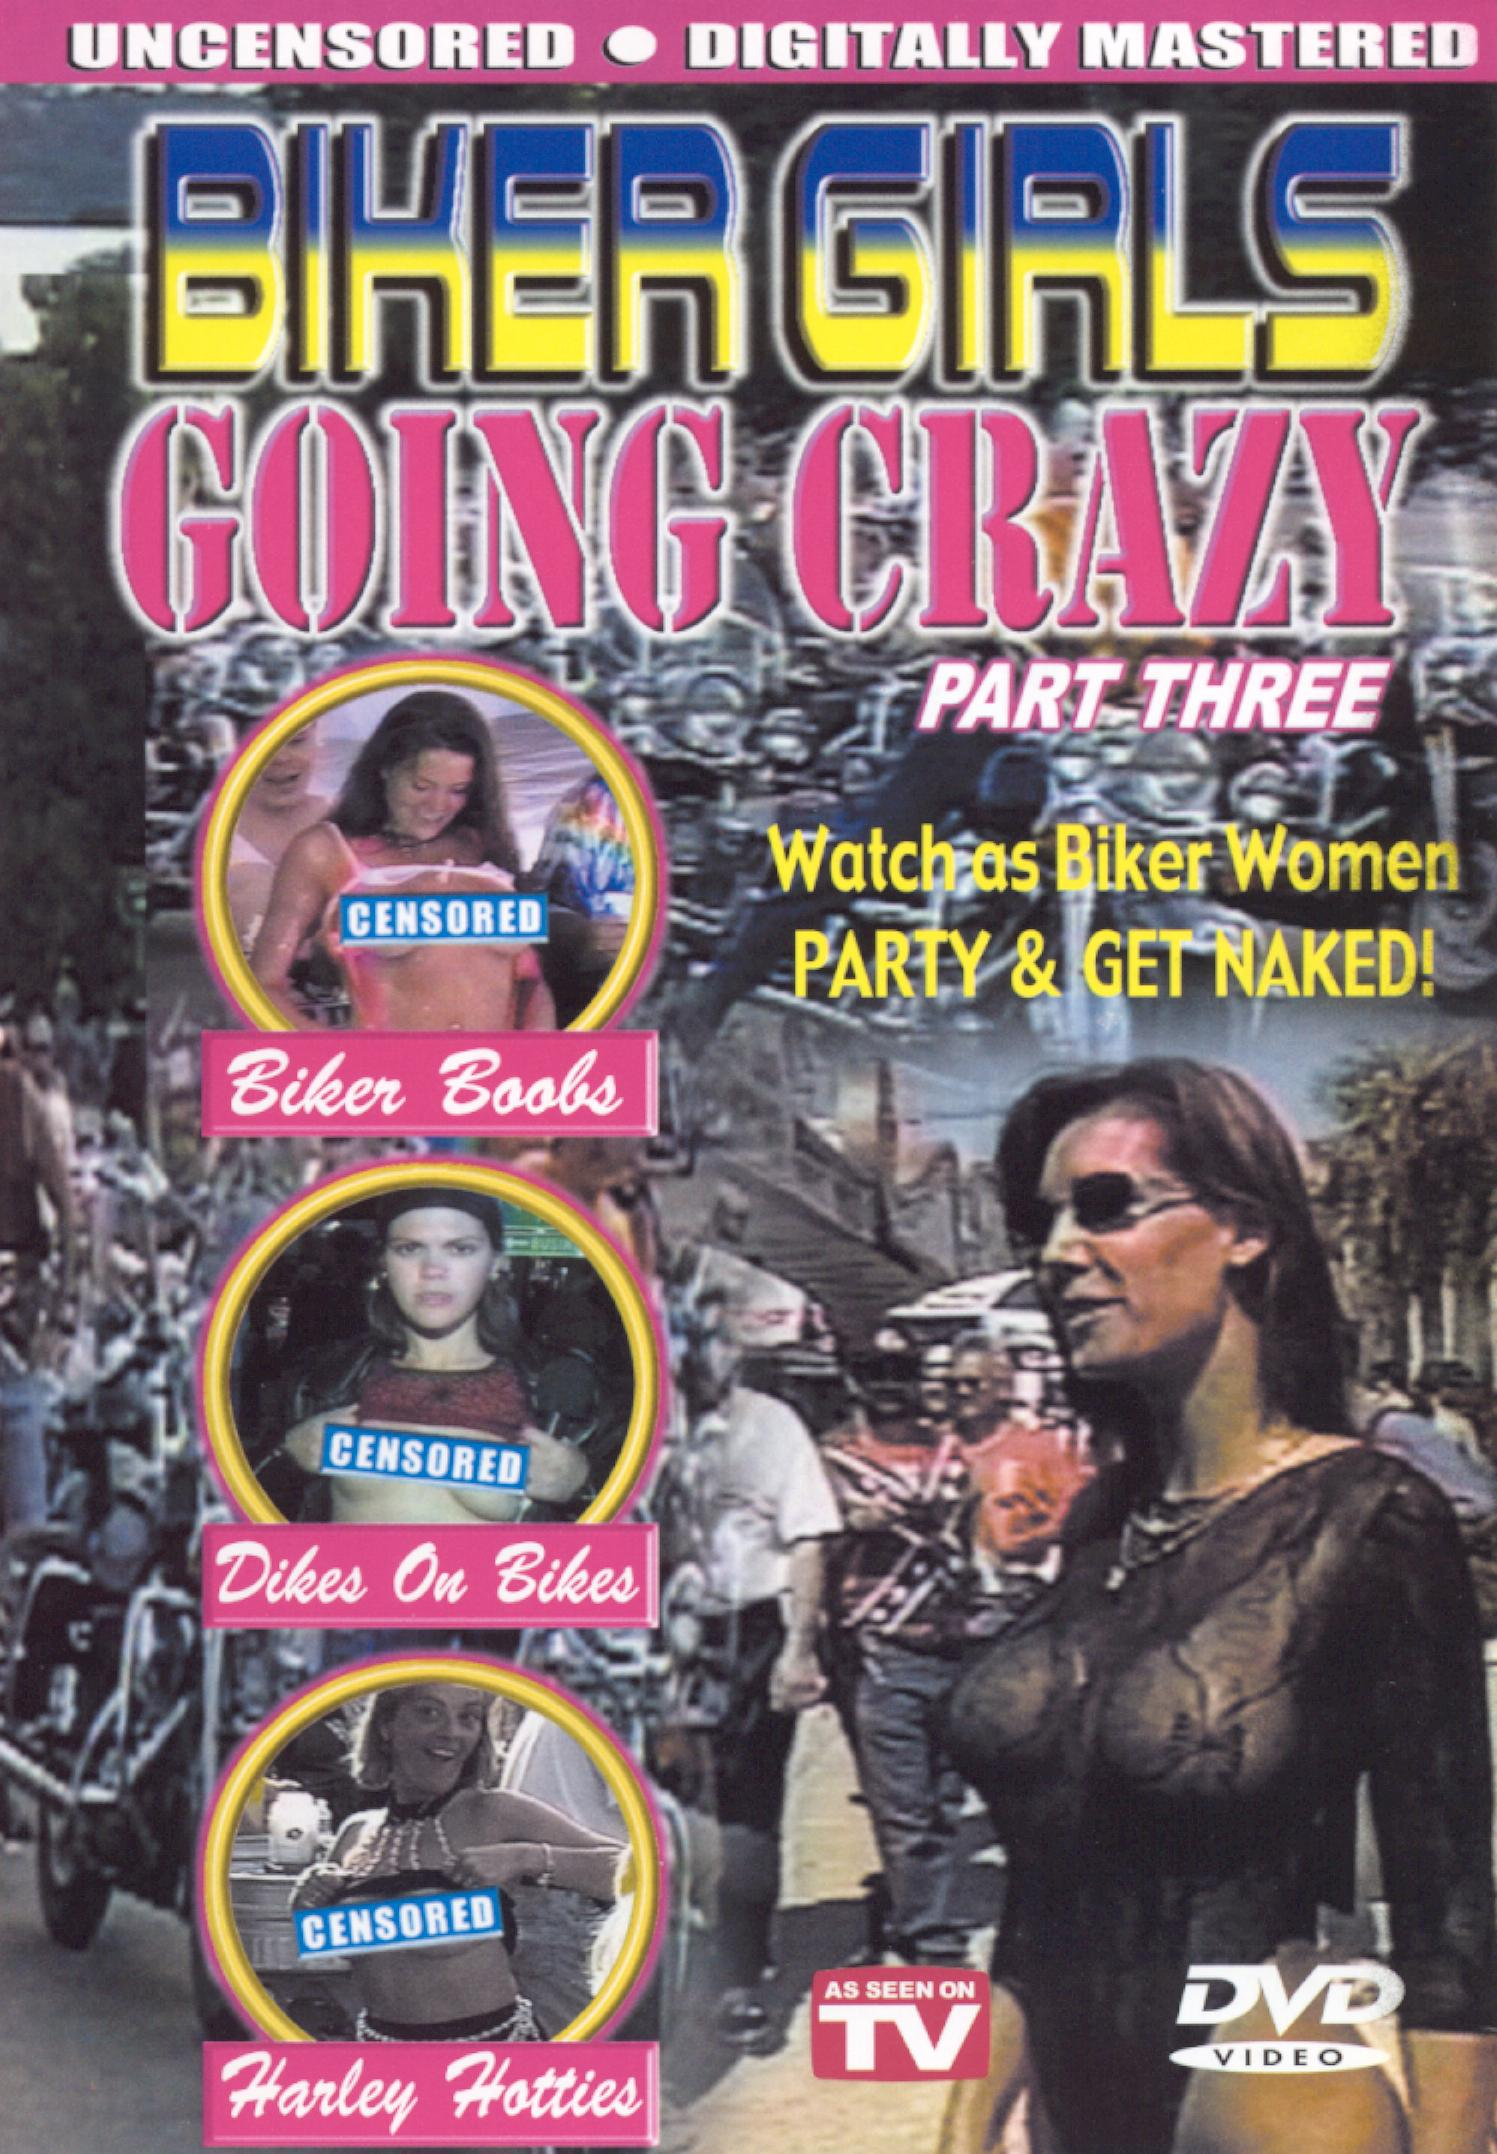 Biker Girls Going Crazy, Part 3